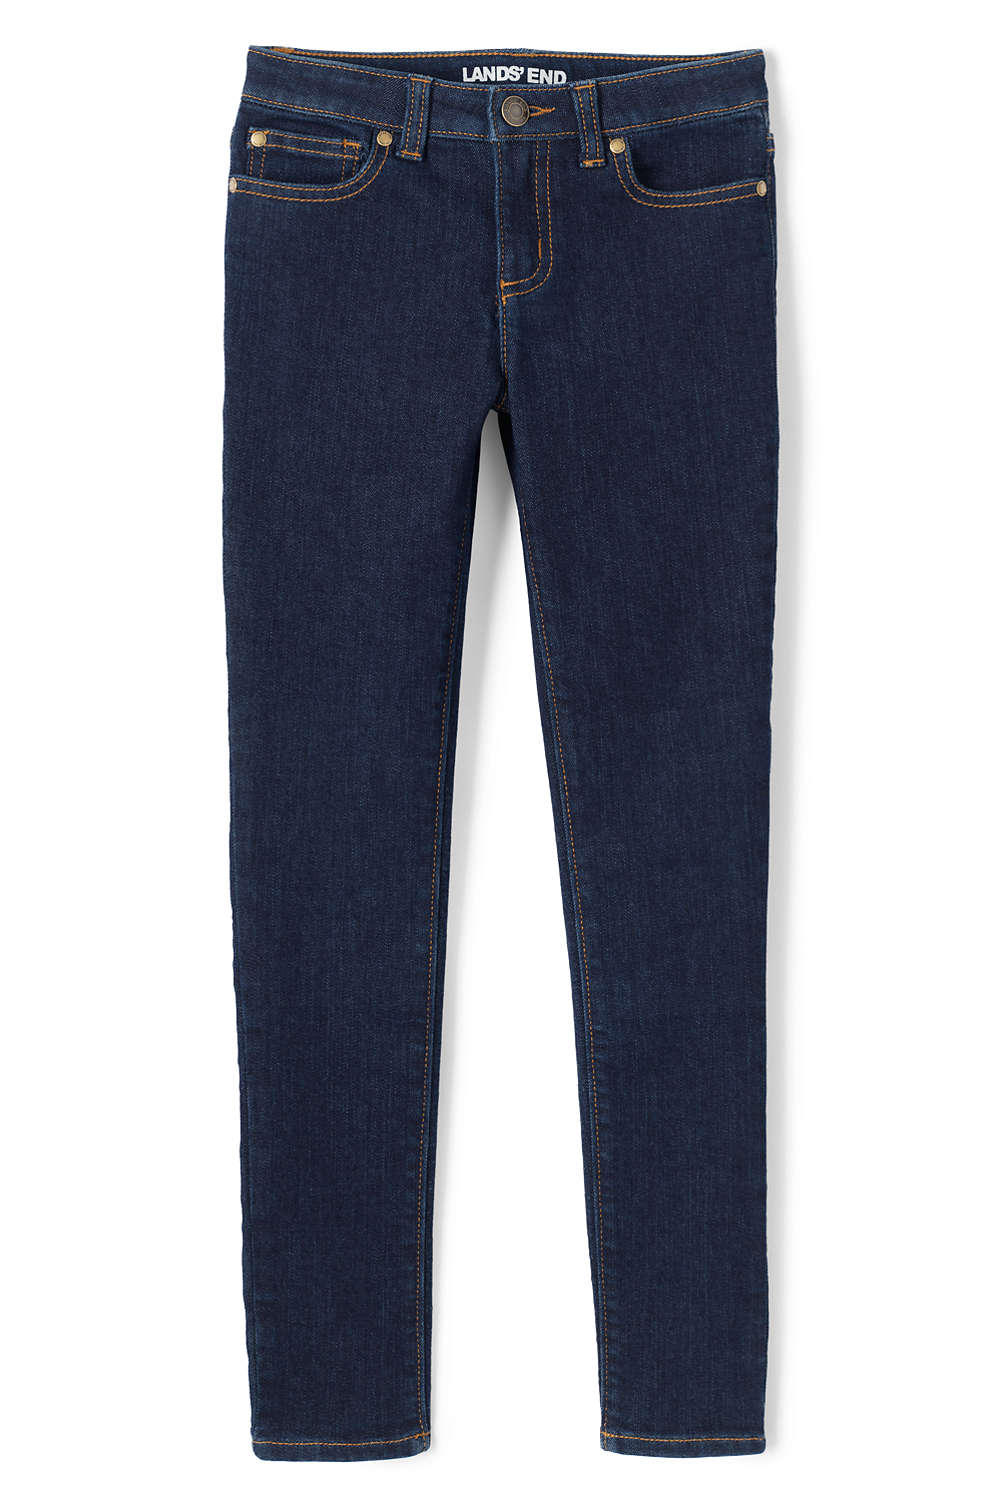 6cbcfcfd8f5a1 Girls Iron Knee Skinny Jeans from Lands' End